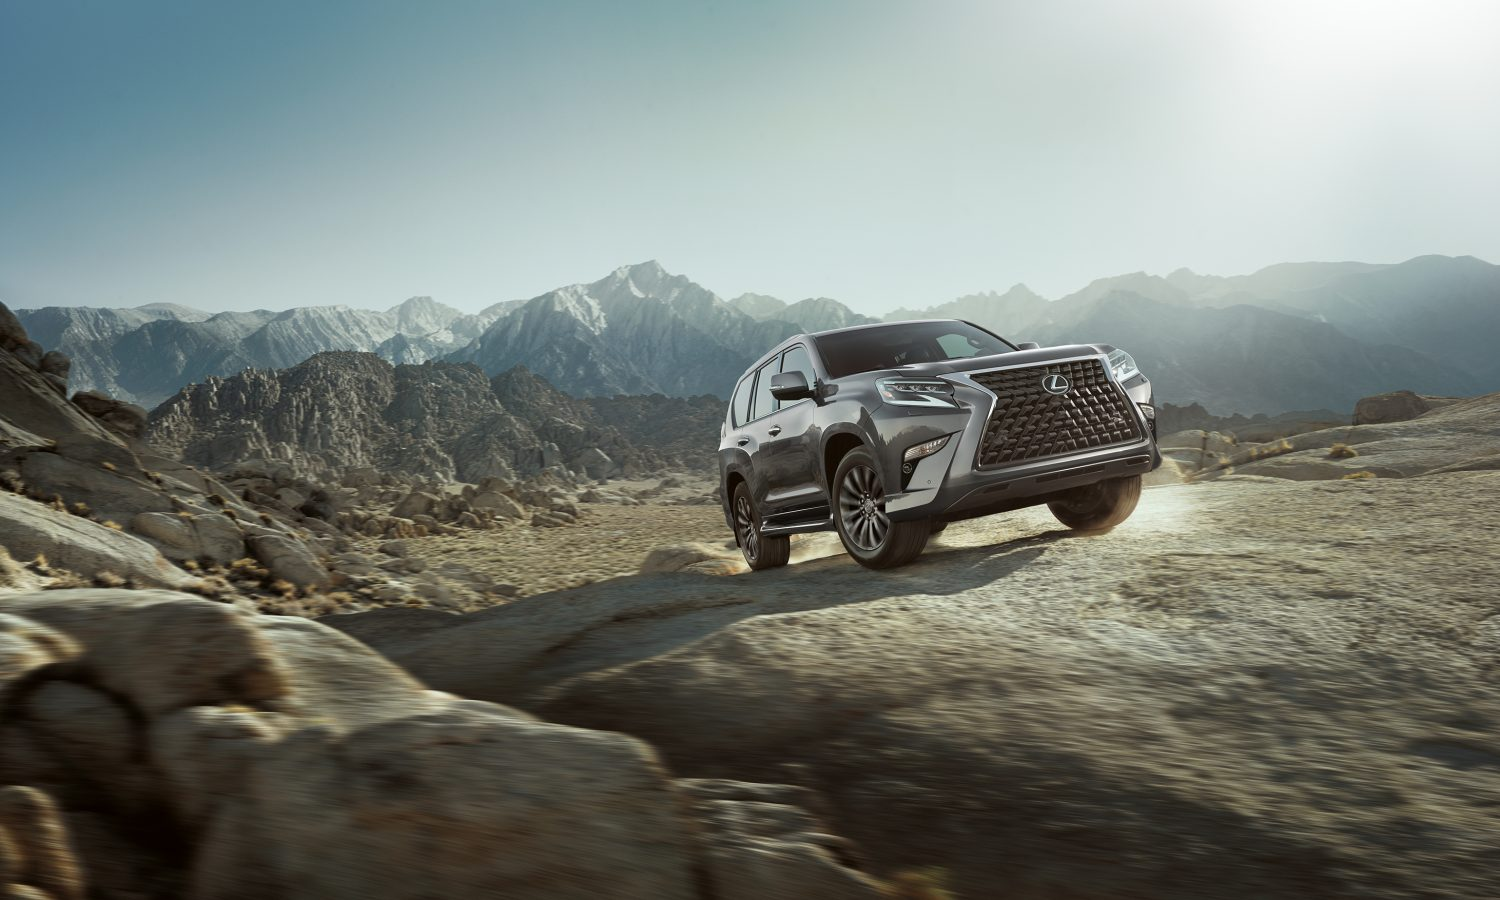 LEXUS GX 460 NAMED FULL-SIZE LUXURY SUV OF TEXAS AT TEXAS TRUCK RODEO